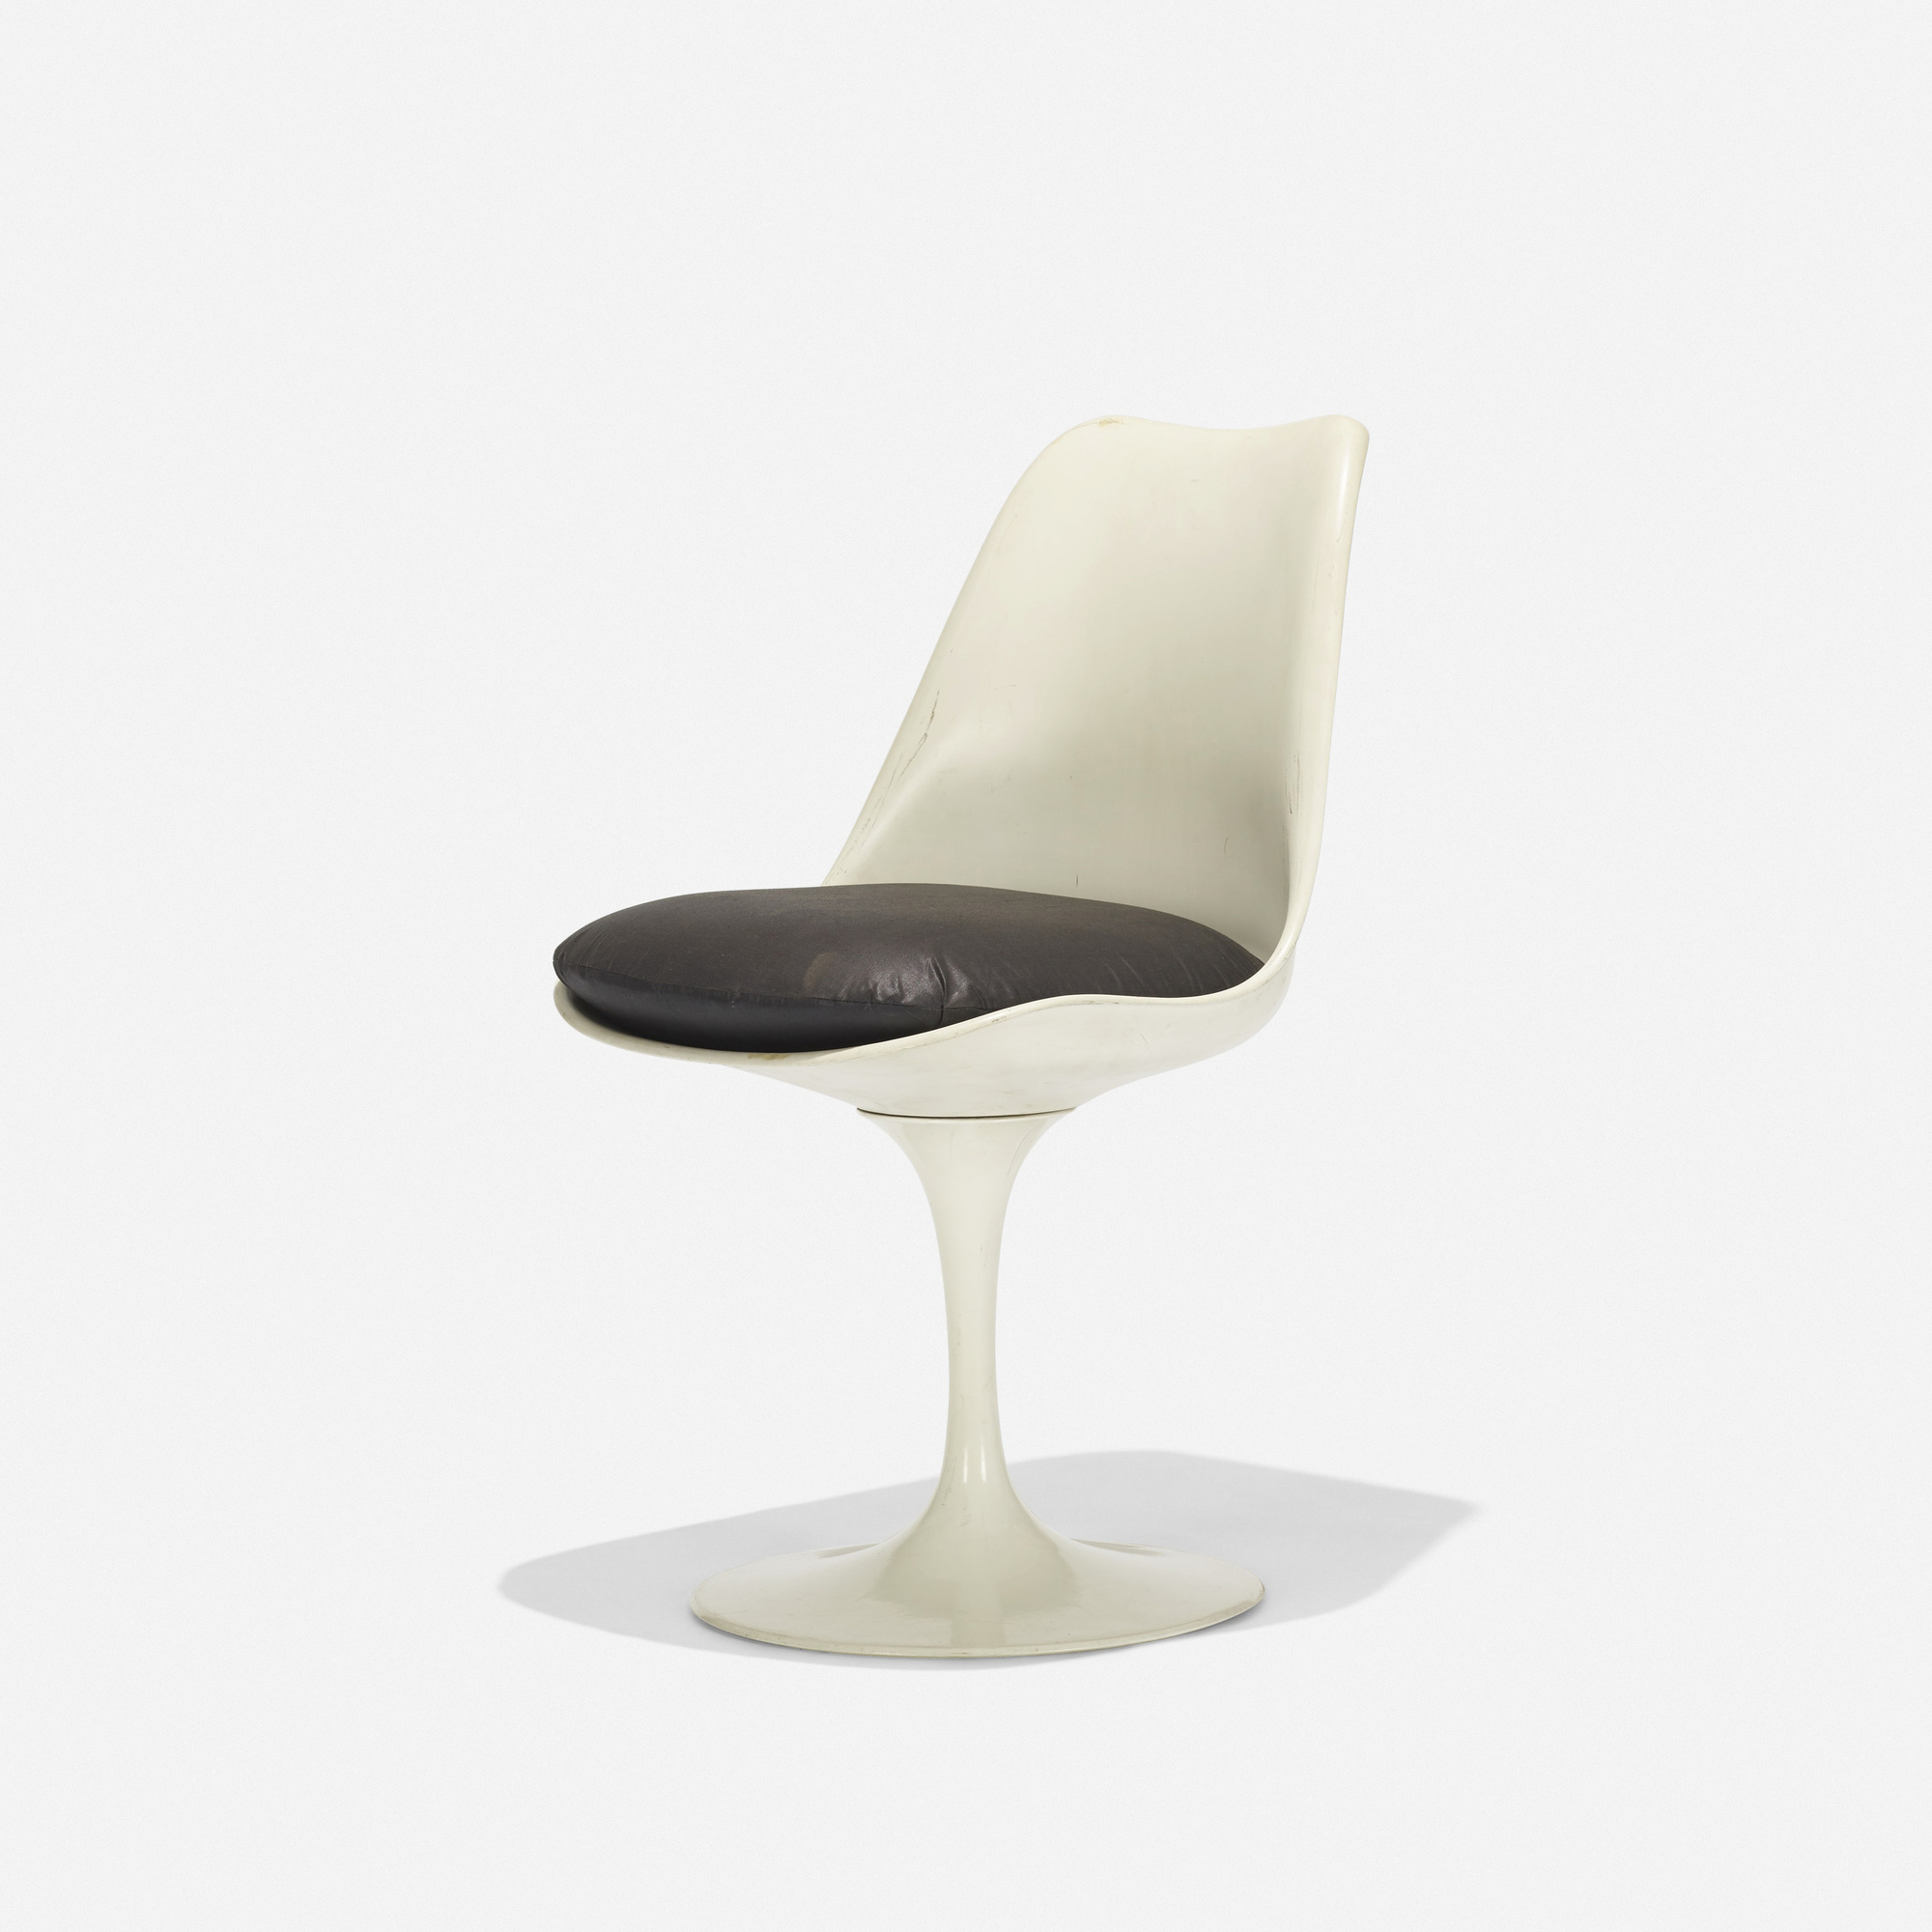 121: Eero Saarinen / Tulip chair (3 of 3)